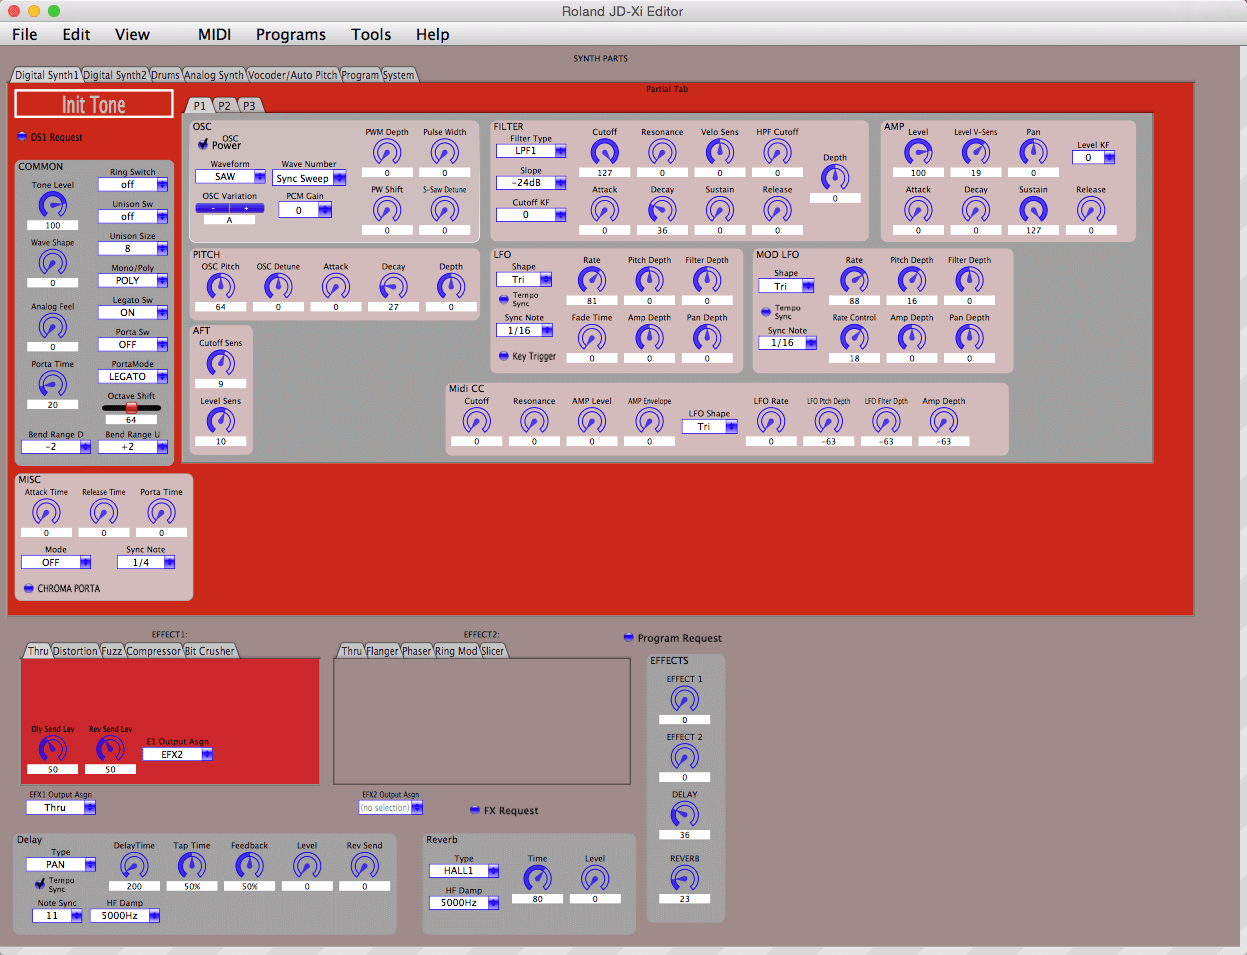 Memory Splice Roland JD-Xi Editor Software